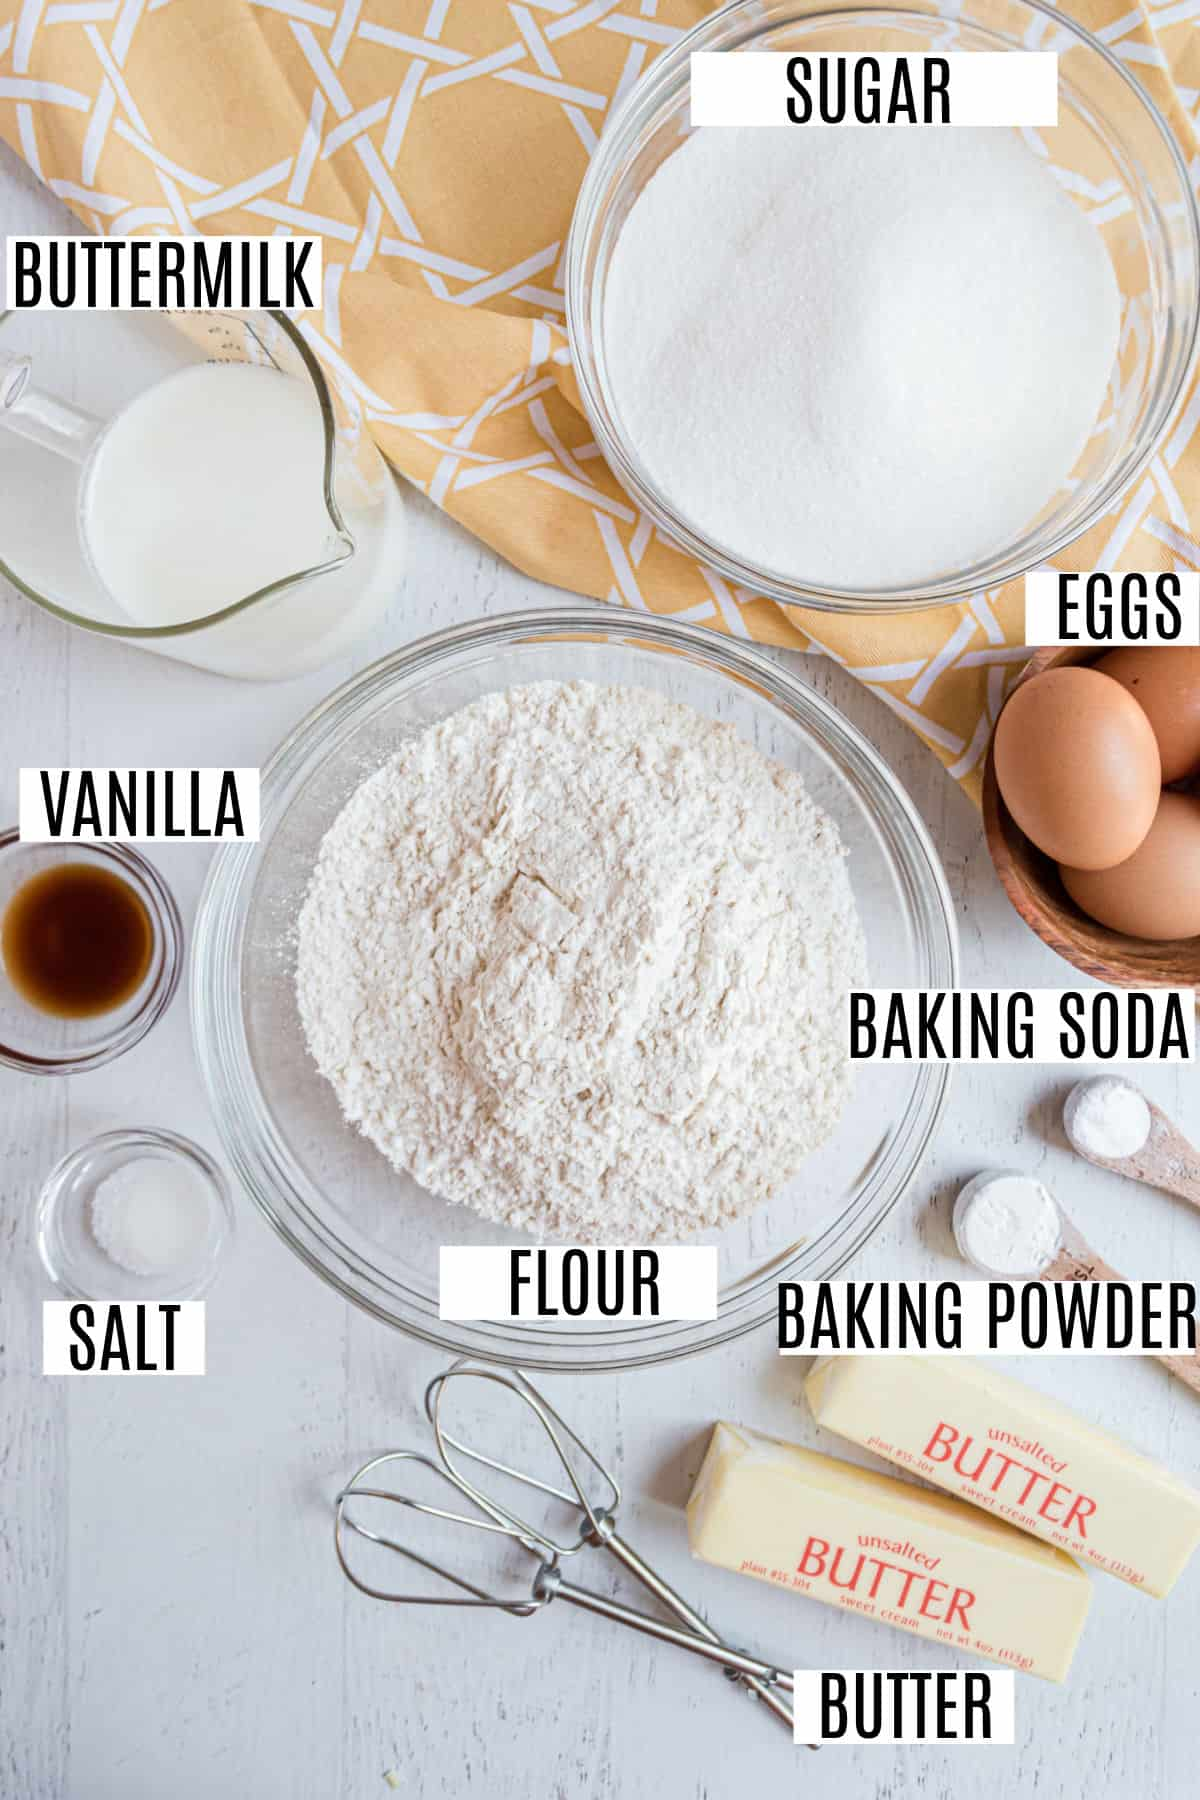 Ingredients needed to make kentucky butter cake, including buttermilk.